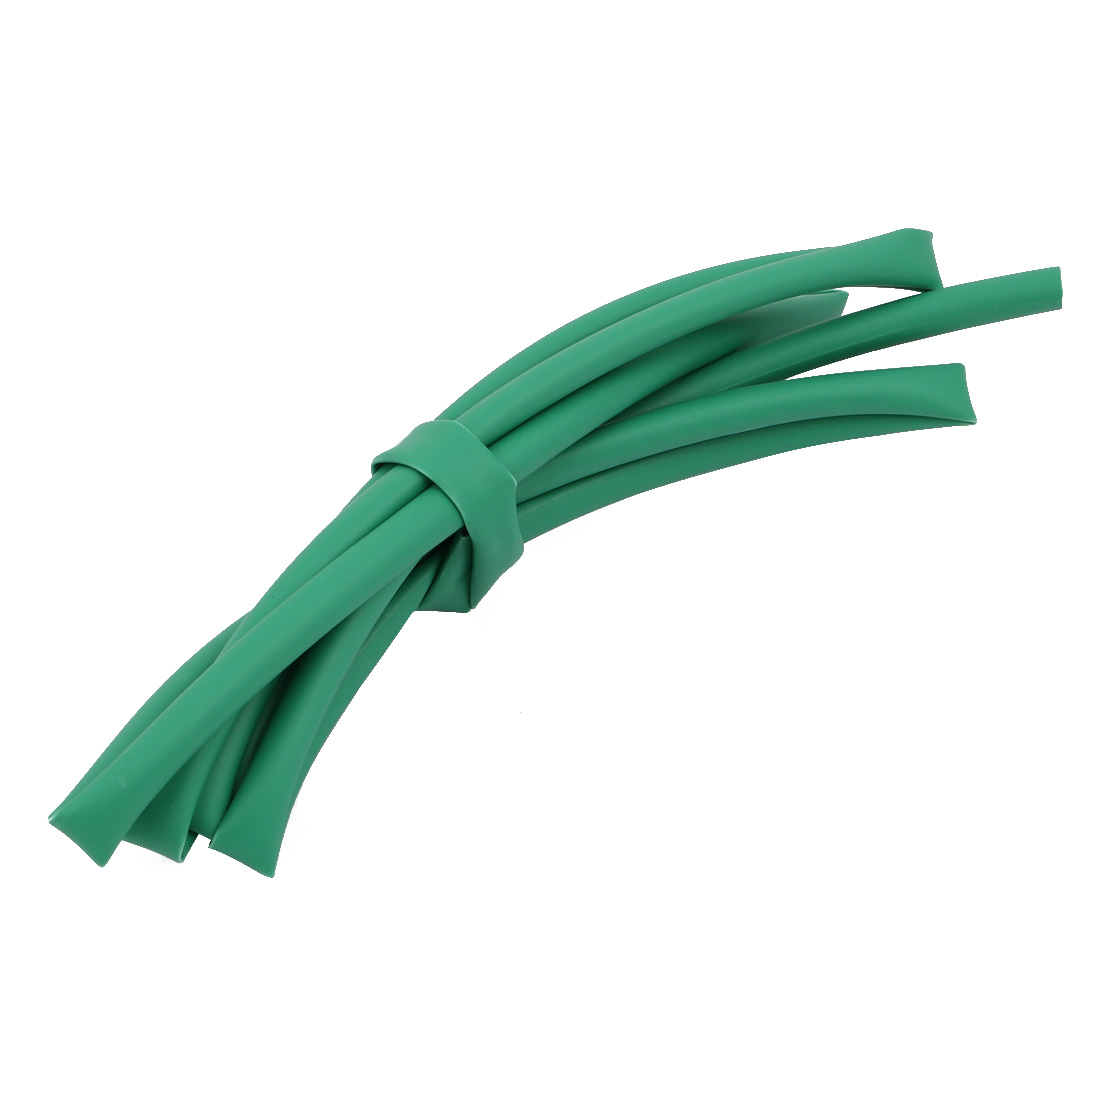 1M 0.18in Inner Dia Polyolefin Flame Retardant Tube Green for Wire Repairing